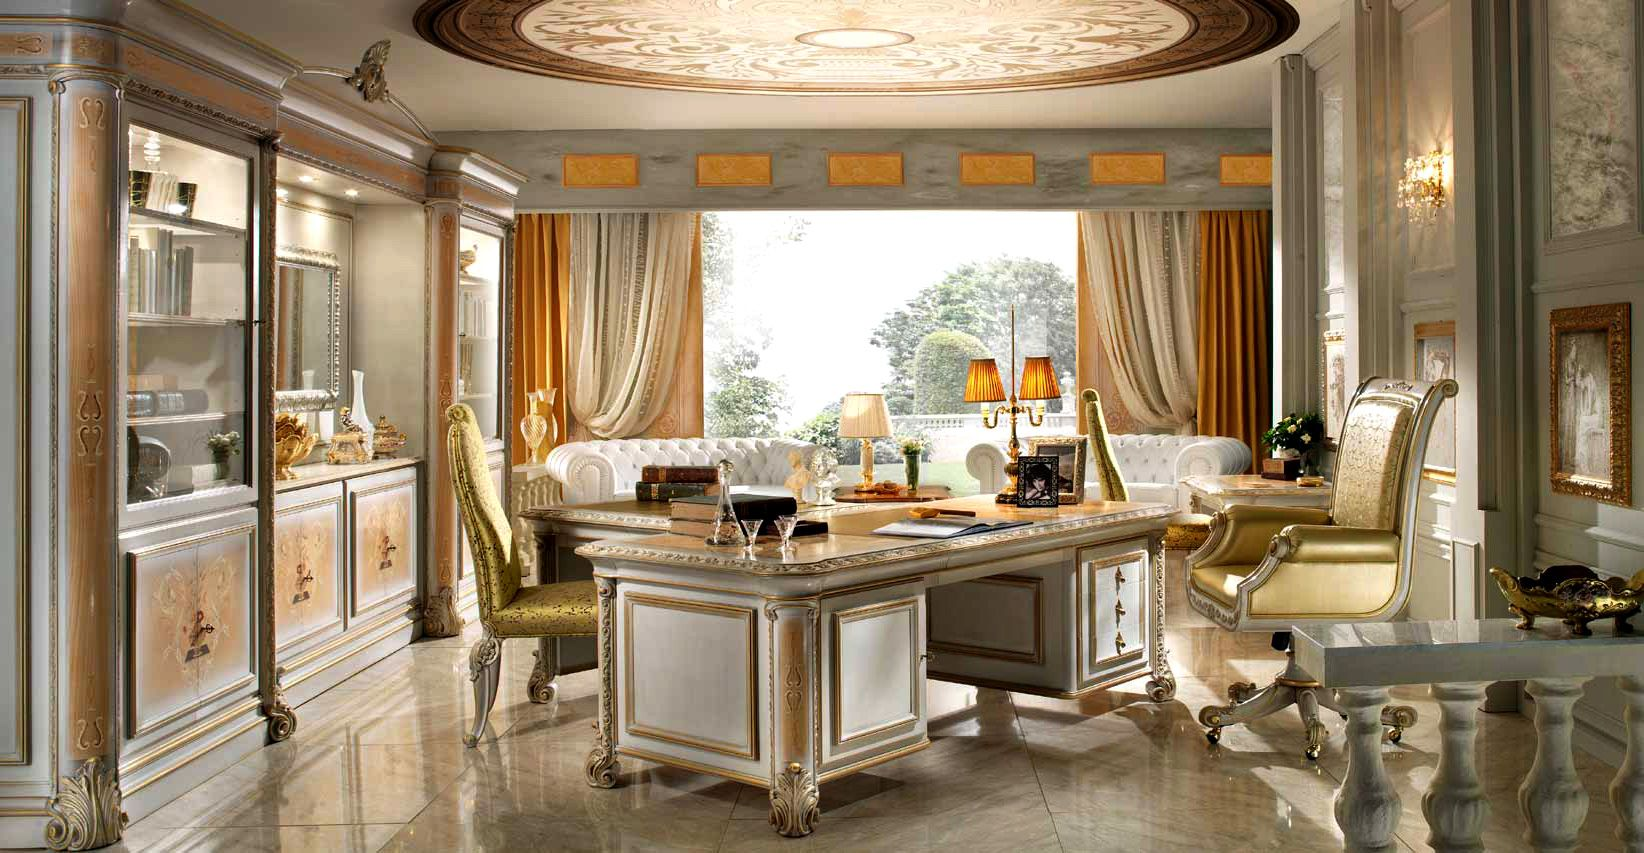 buy home office furniture give. Glamor Nuance Is The Key Element That Defines This Stunning Living Room Furniture, And Buy Home Office Furniture Give